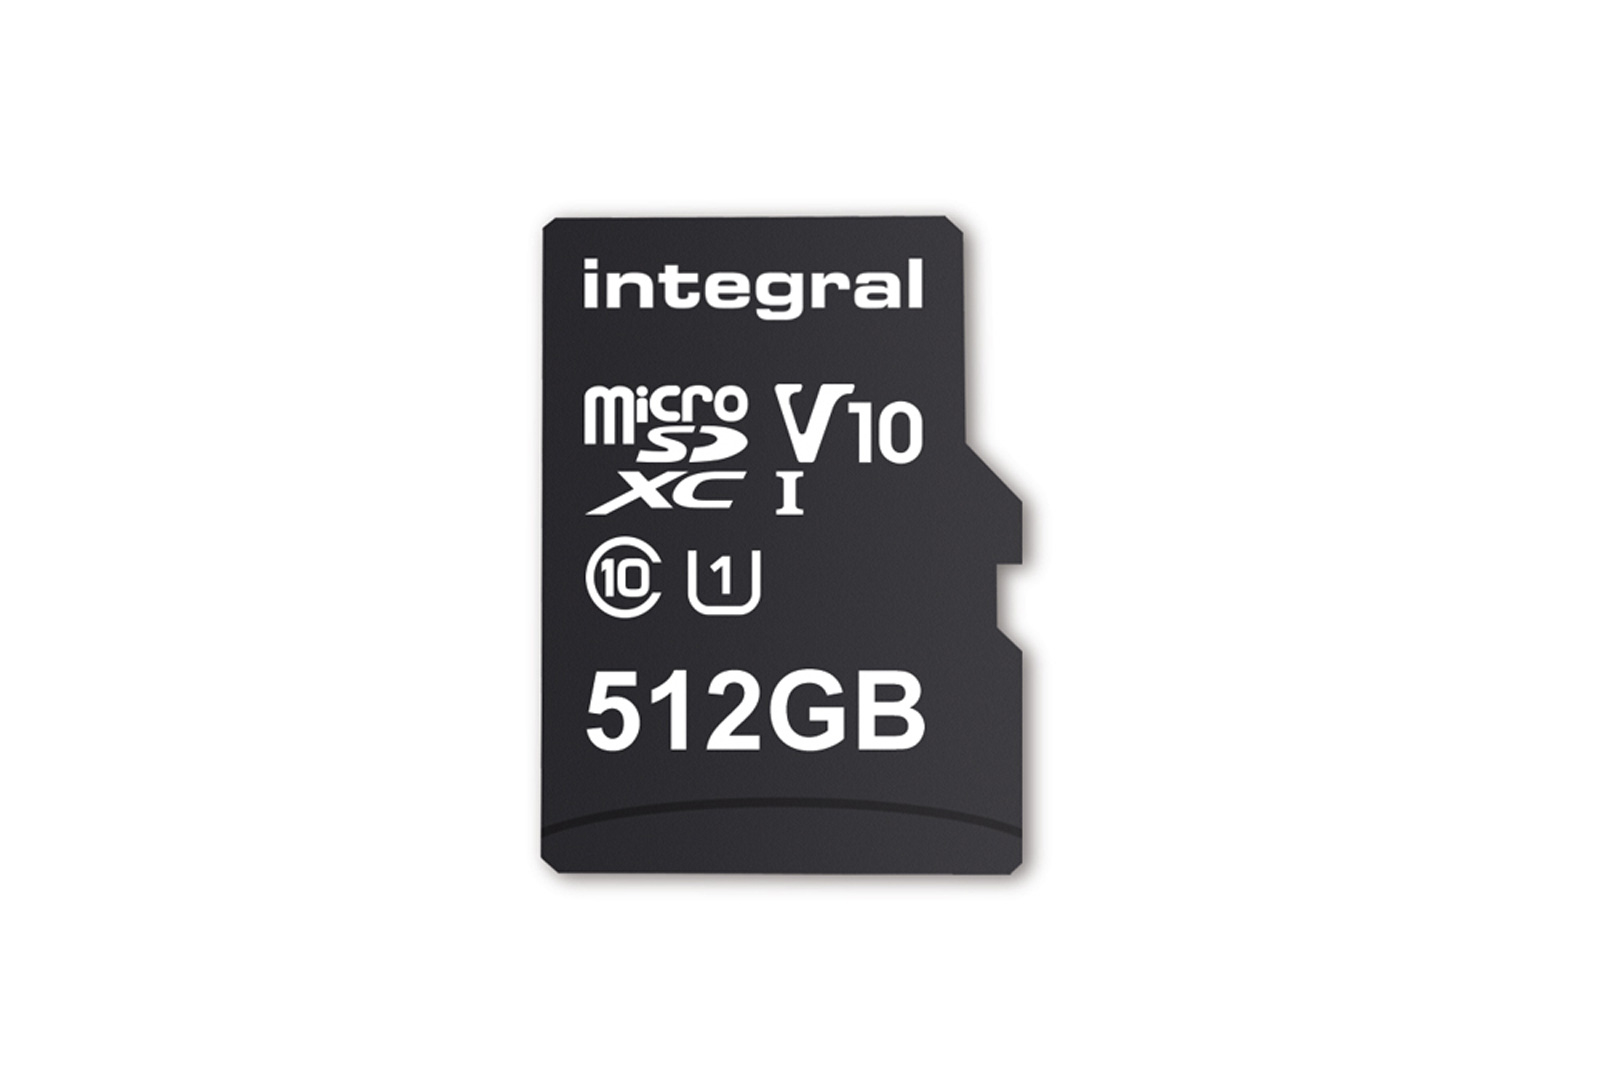 The Biggest Integral Memory microSD Card